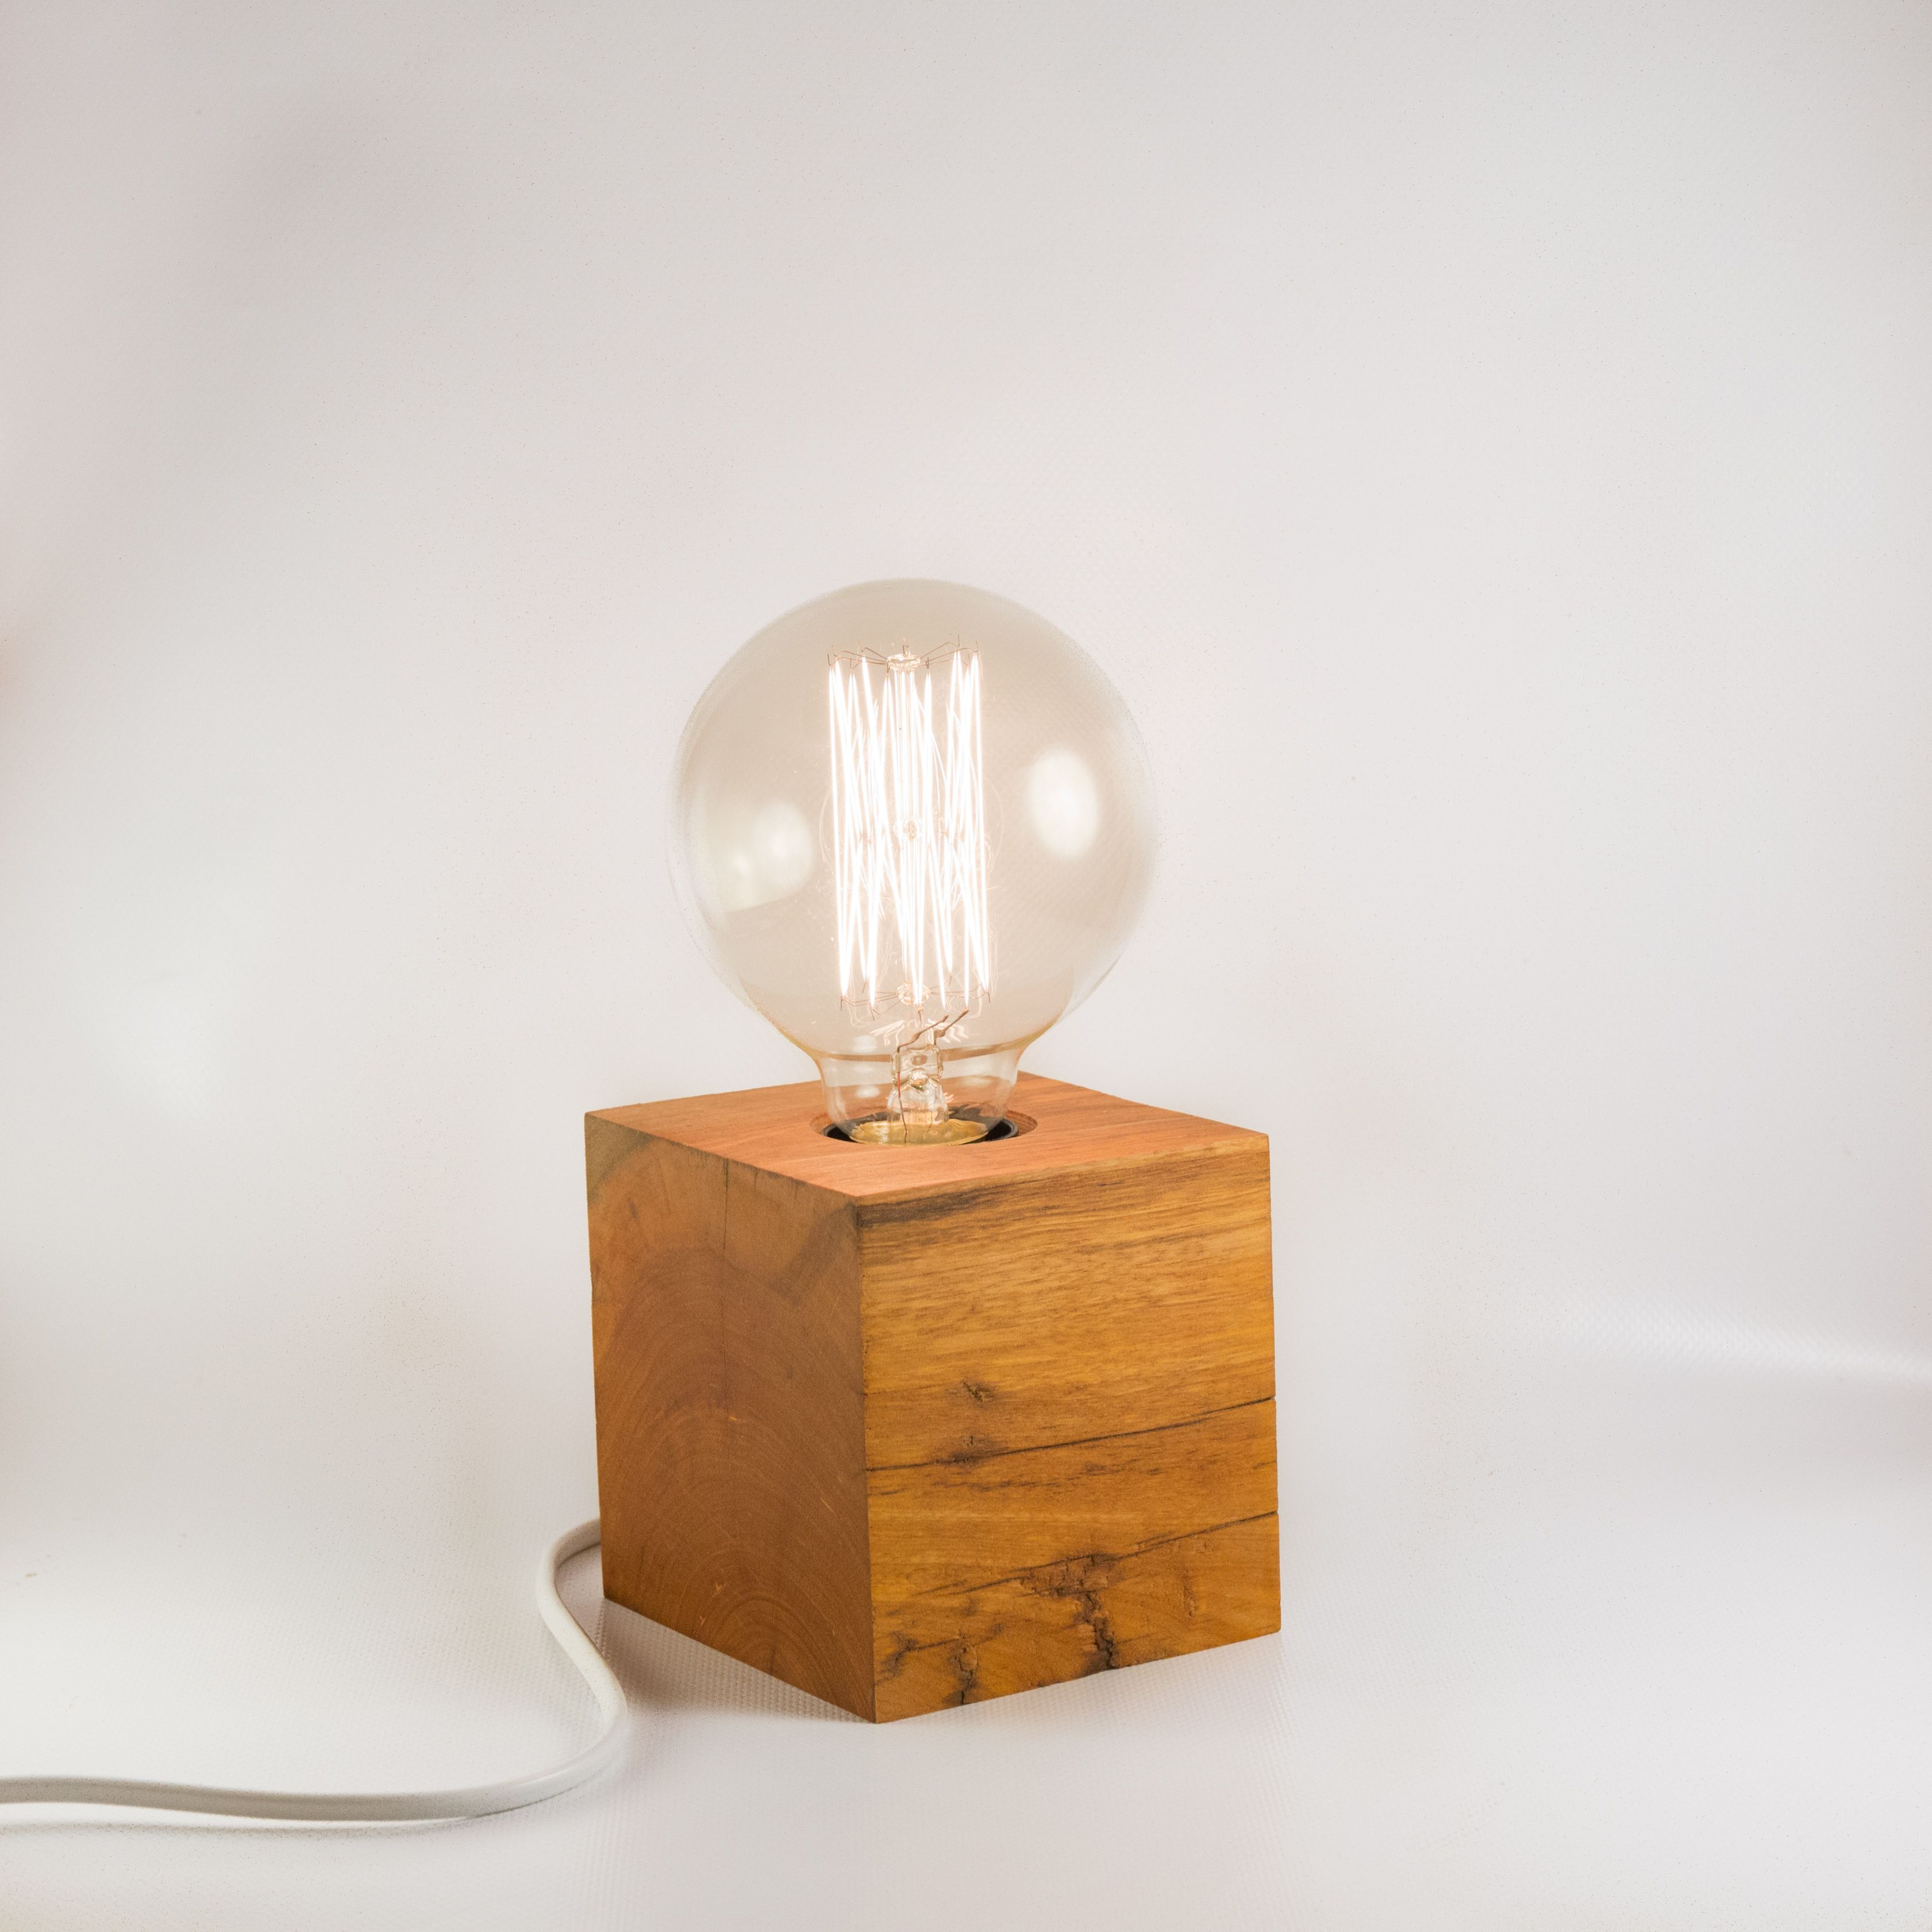 Wood cube yellow cypress lamps pinterest lamp light cube upswitch creates imaginative sustainable lamps lighting and homewares handmade in melbourne using upcycled and reclaimed materials arubaitofo Gallery